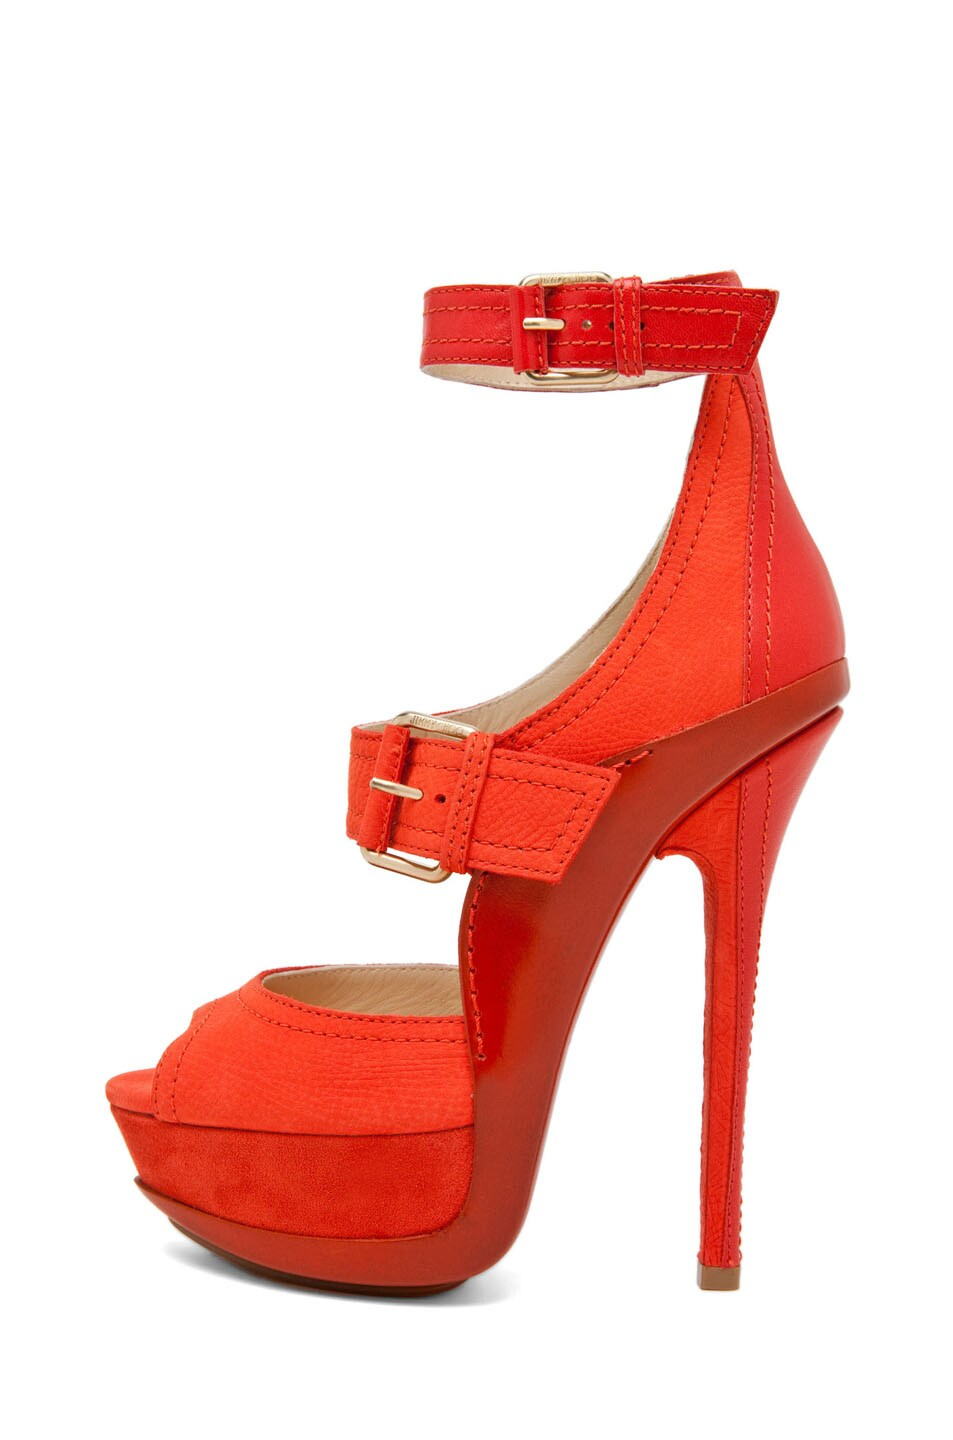 Image 1 of Jimmy Choo Letitia Platform Sandal in Coral